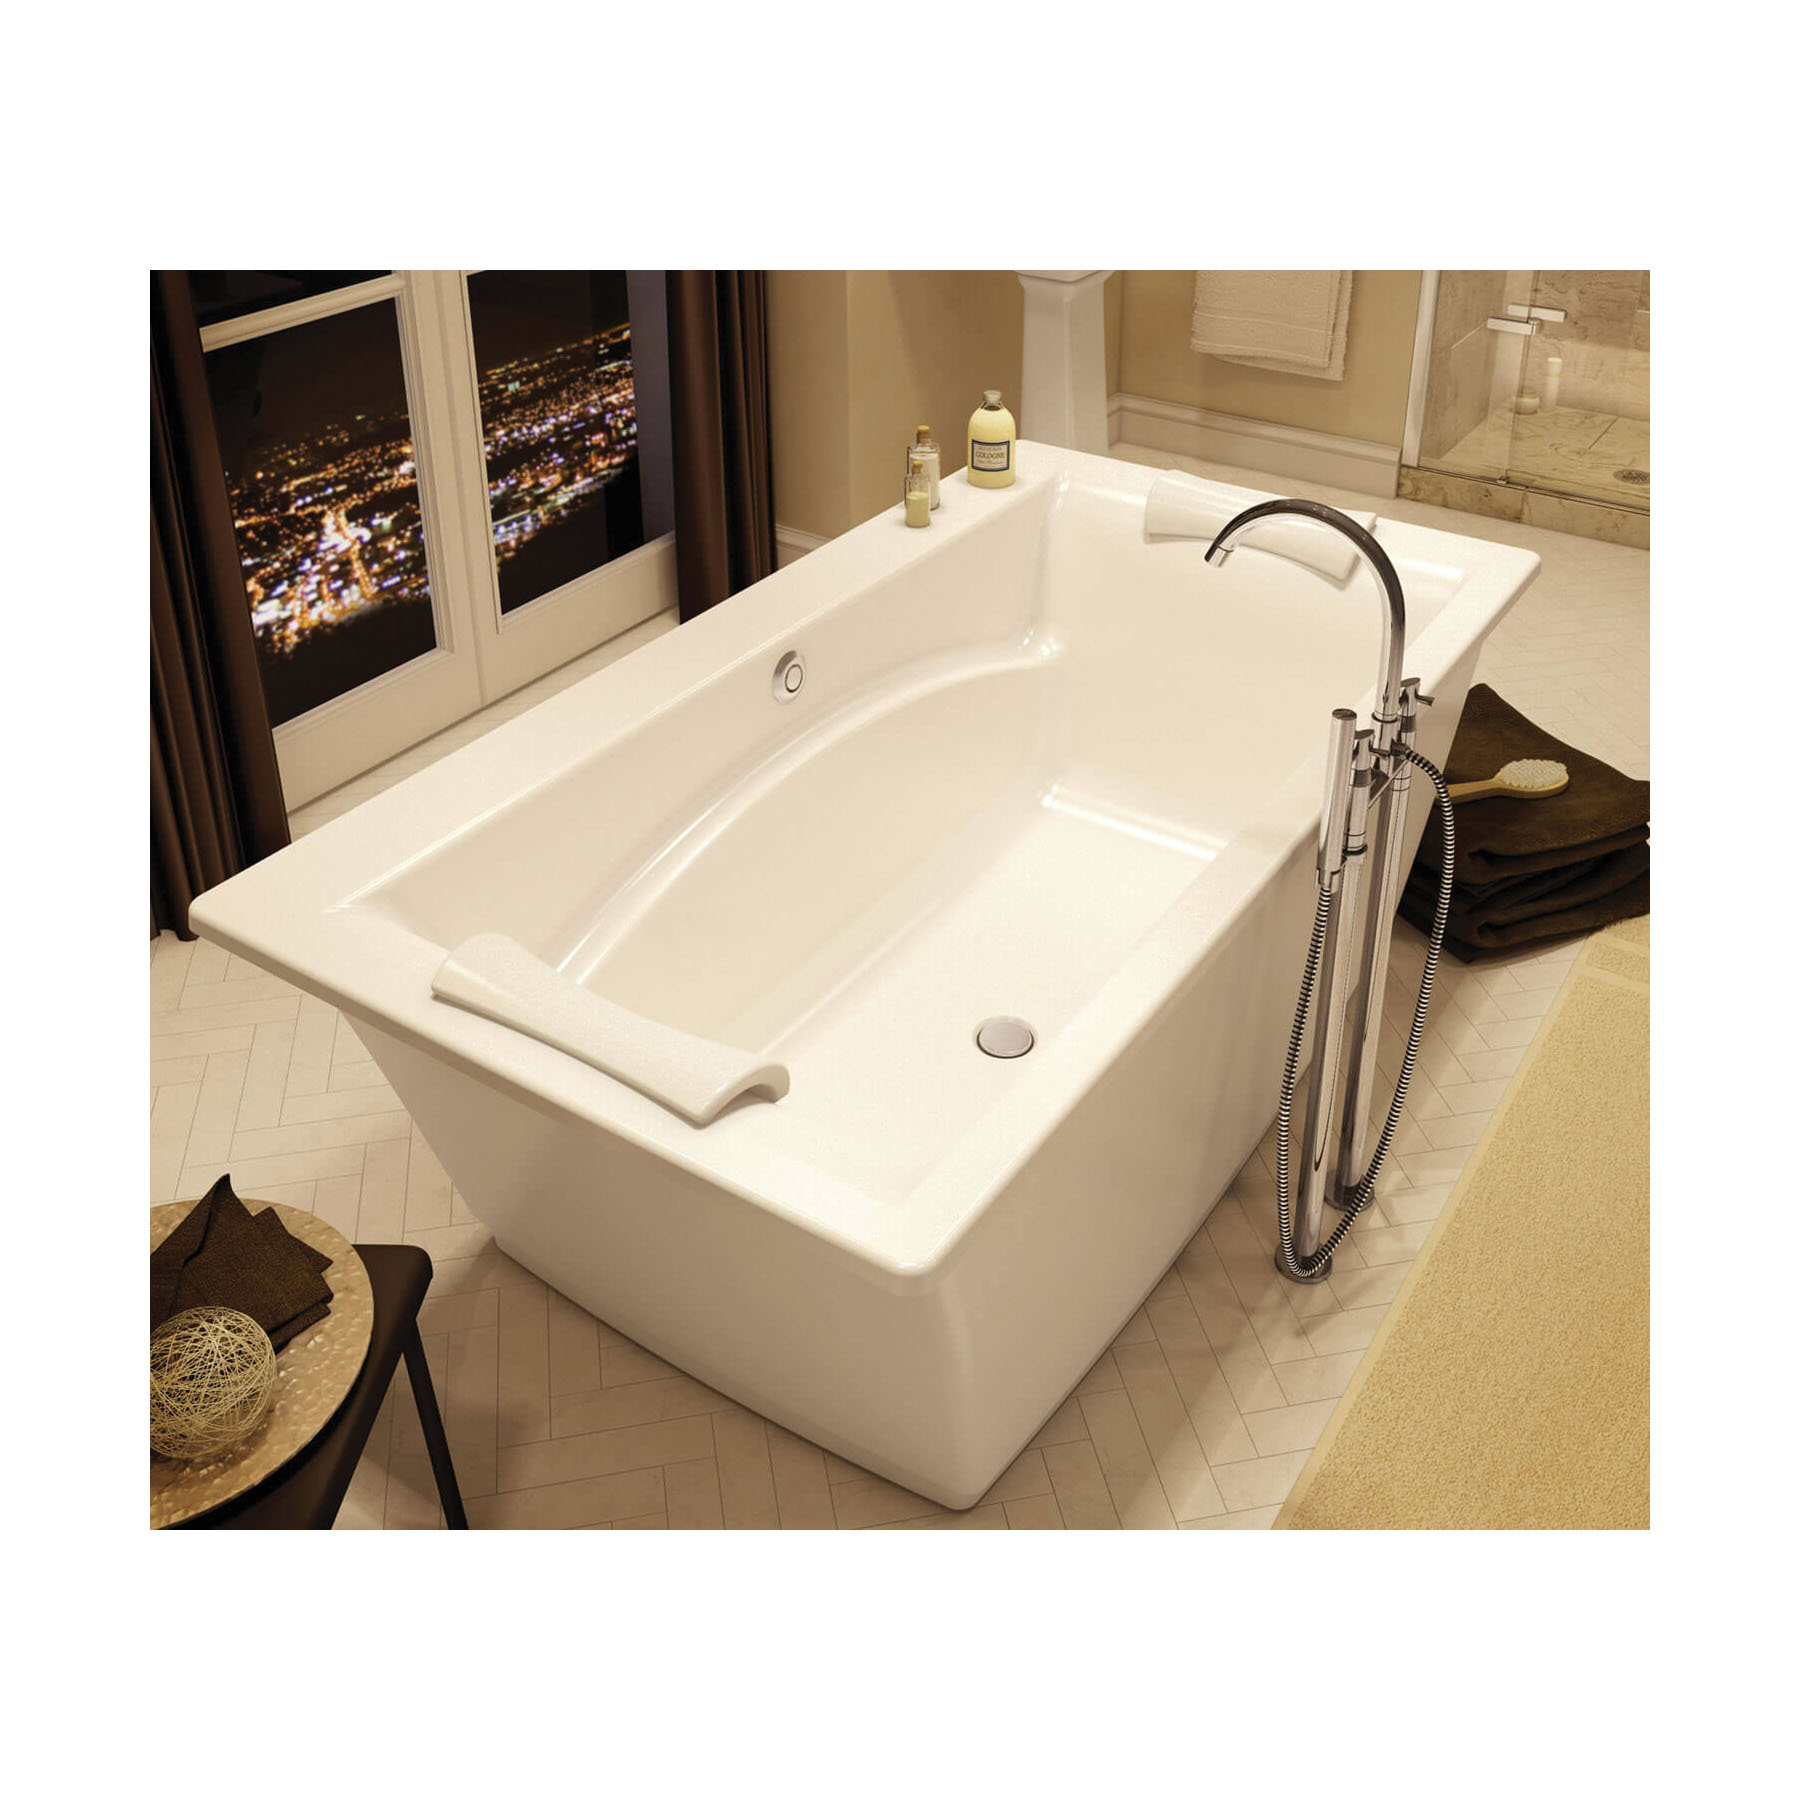 MAAX® 105742-000-001 Optik® 6636 F 2-Piece Bathtub Without Jet, Chromatherapy, 66 in L x 36 in W, Center Drain, White